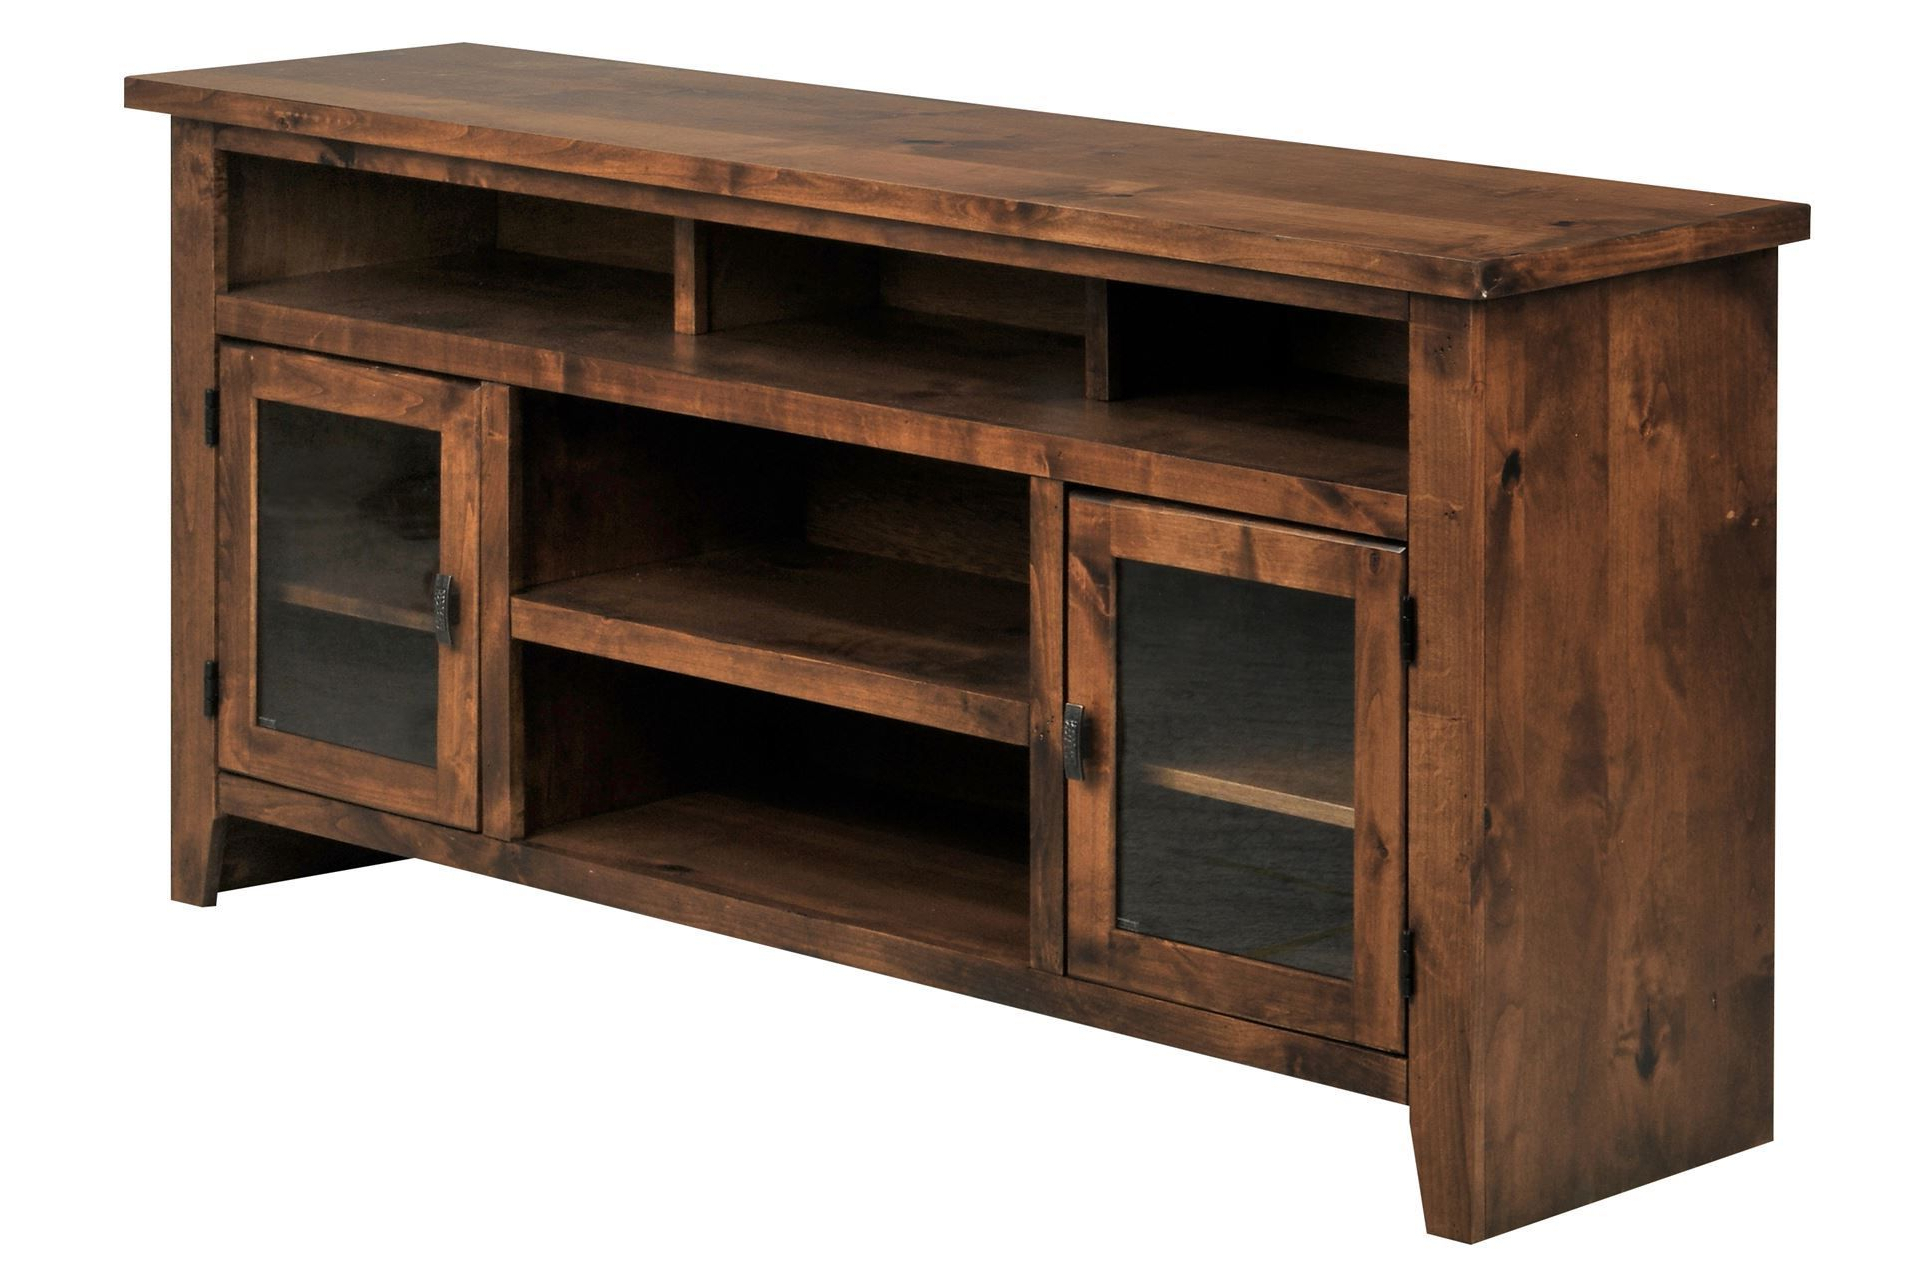 65 Inch Tv Stand, Trent, Fruitwood | 65 Inch Tv Stand, Tv Stands And Tvs Intended For Sinclair Grey 64 Inch Tv Stands (View 7 of 20)